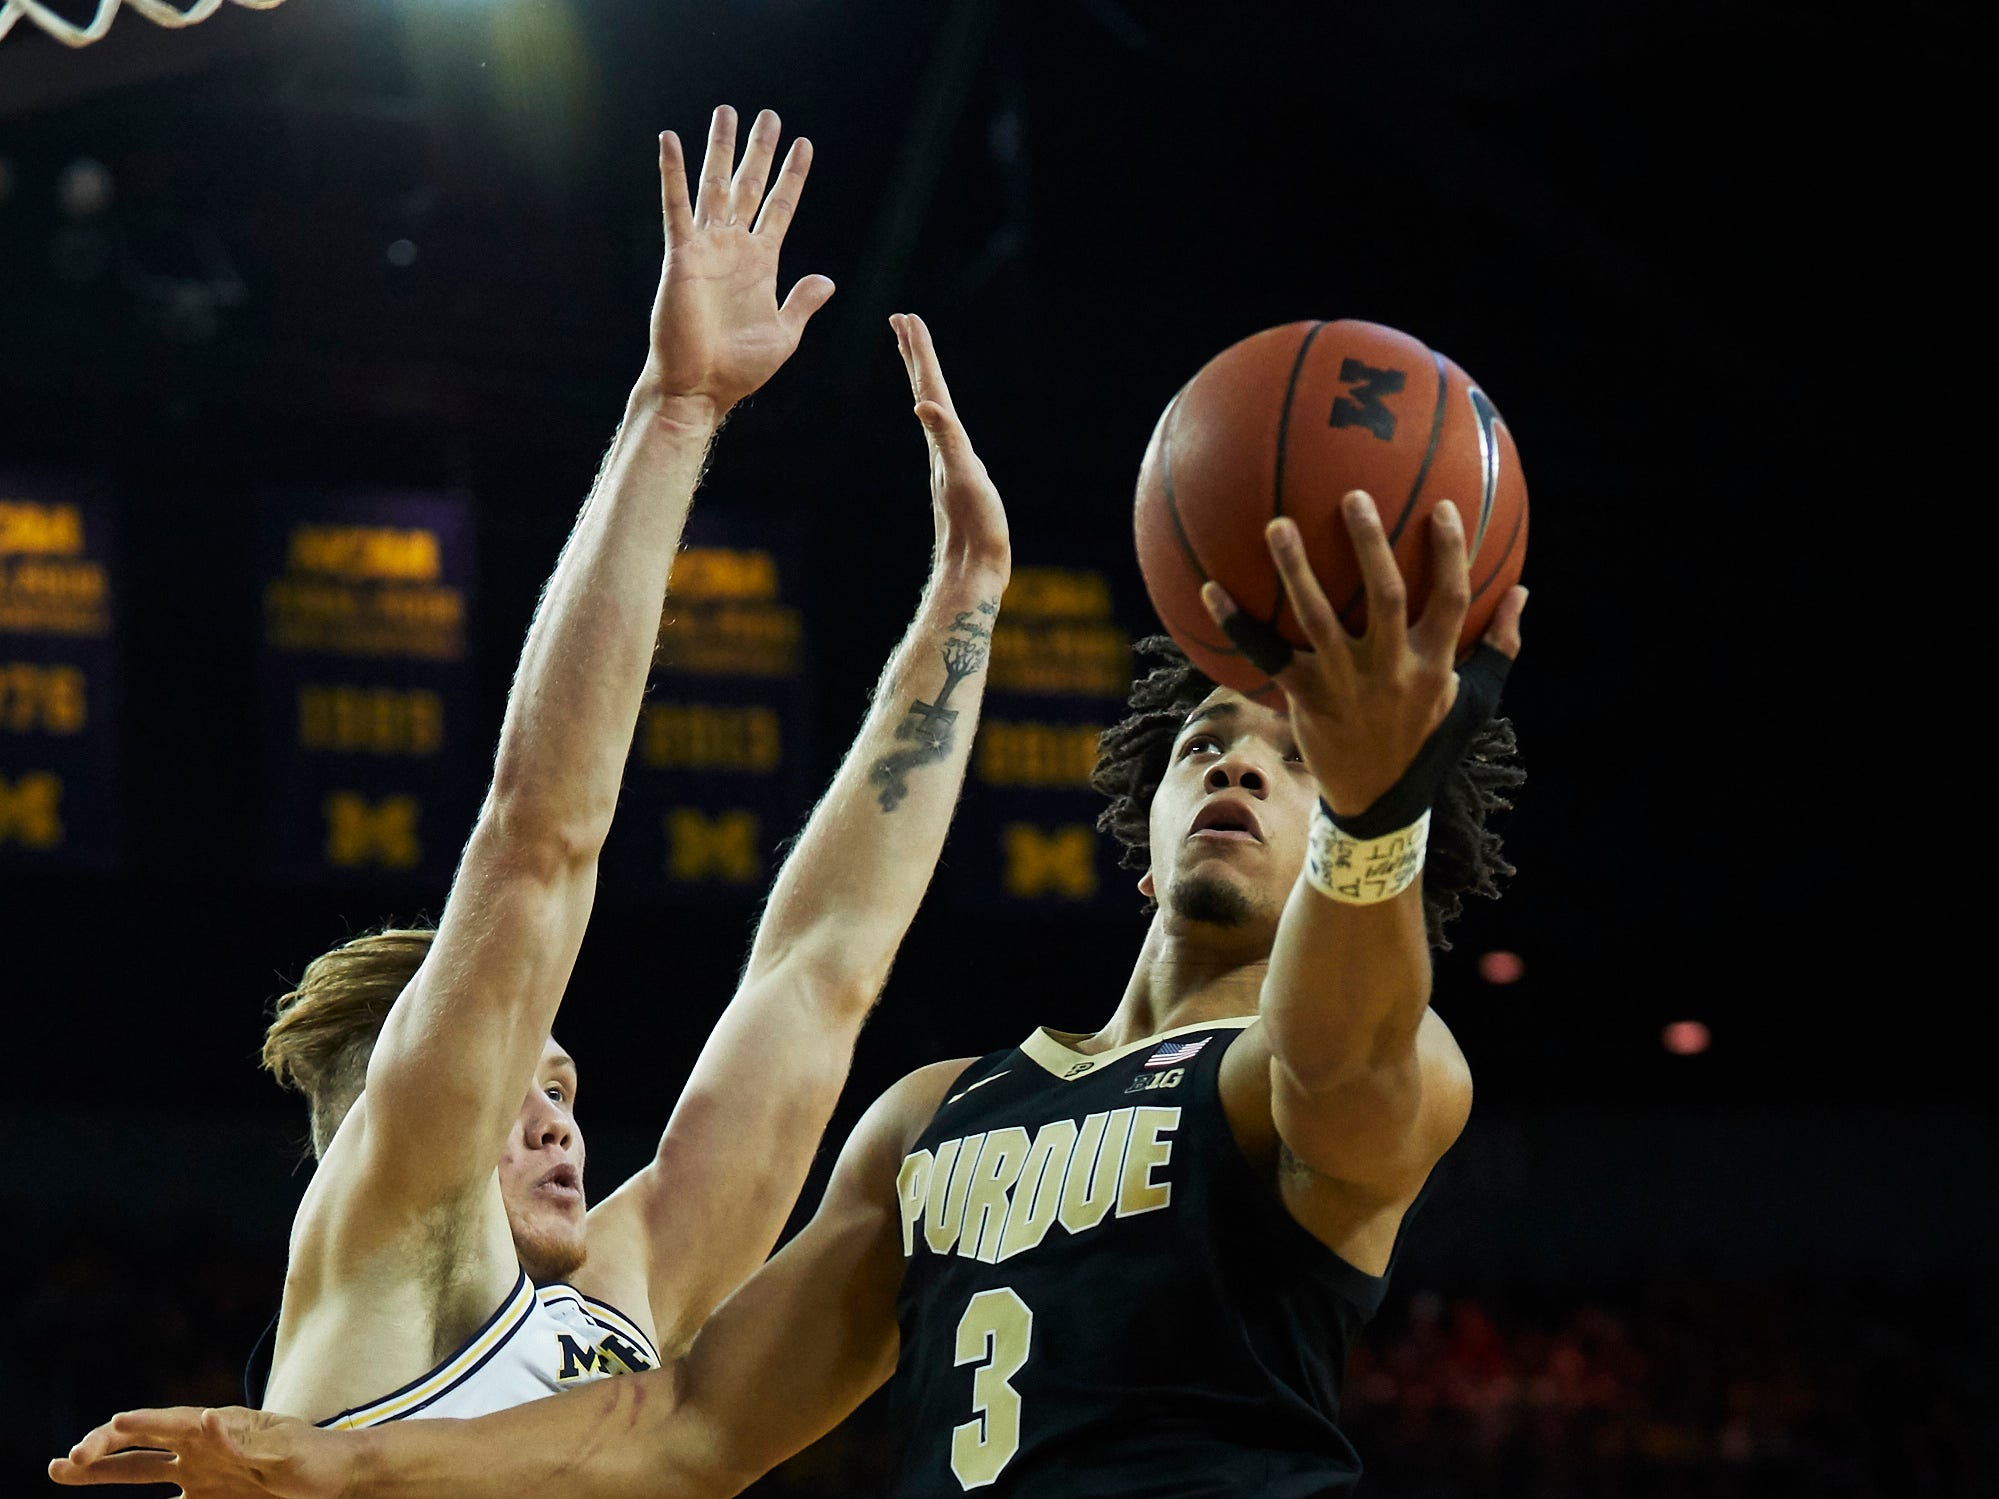 Dec 1, 2018; Ann Arbor, MI, USA; Purdue Boilermakers guard Carsen Edwards (3) shoots against Michigan Wolverines forward Ignas Brazdeikis (left) in the second half at Crisler Center. Mandatory Credit: Rick Osentoski-USA TODAY Sports